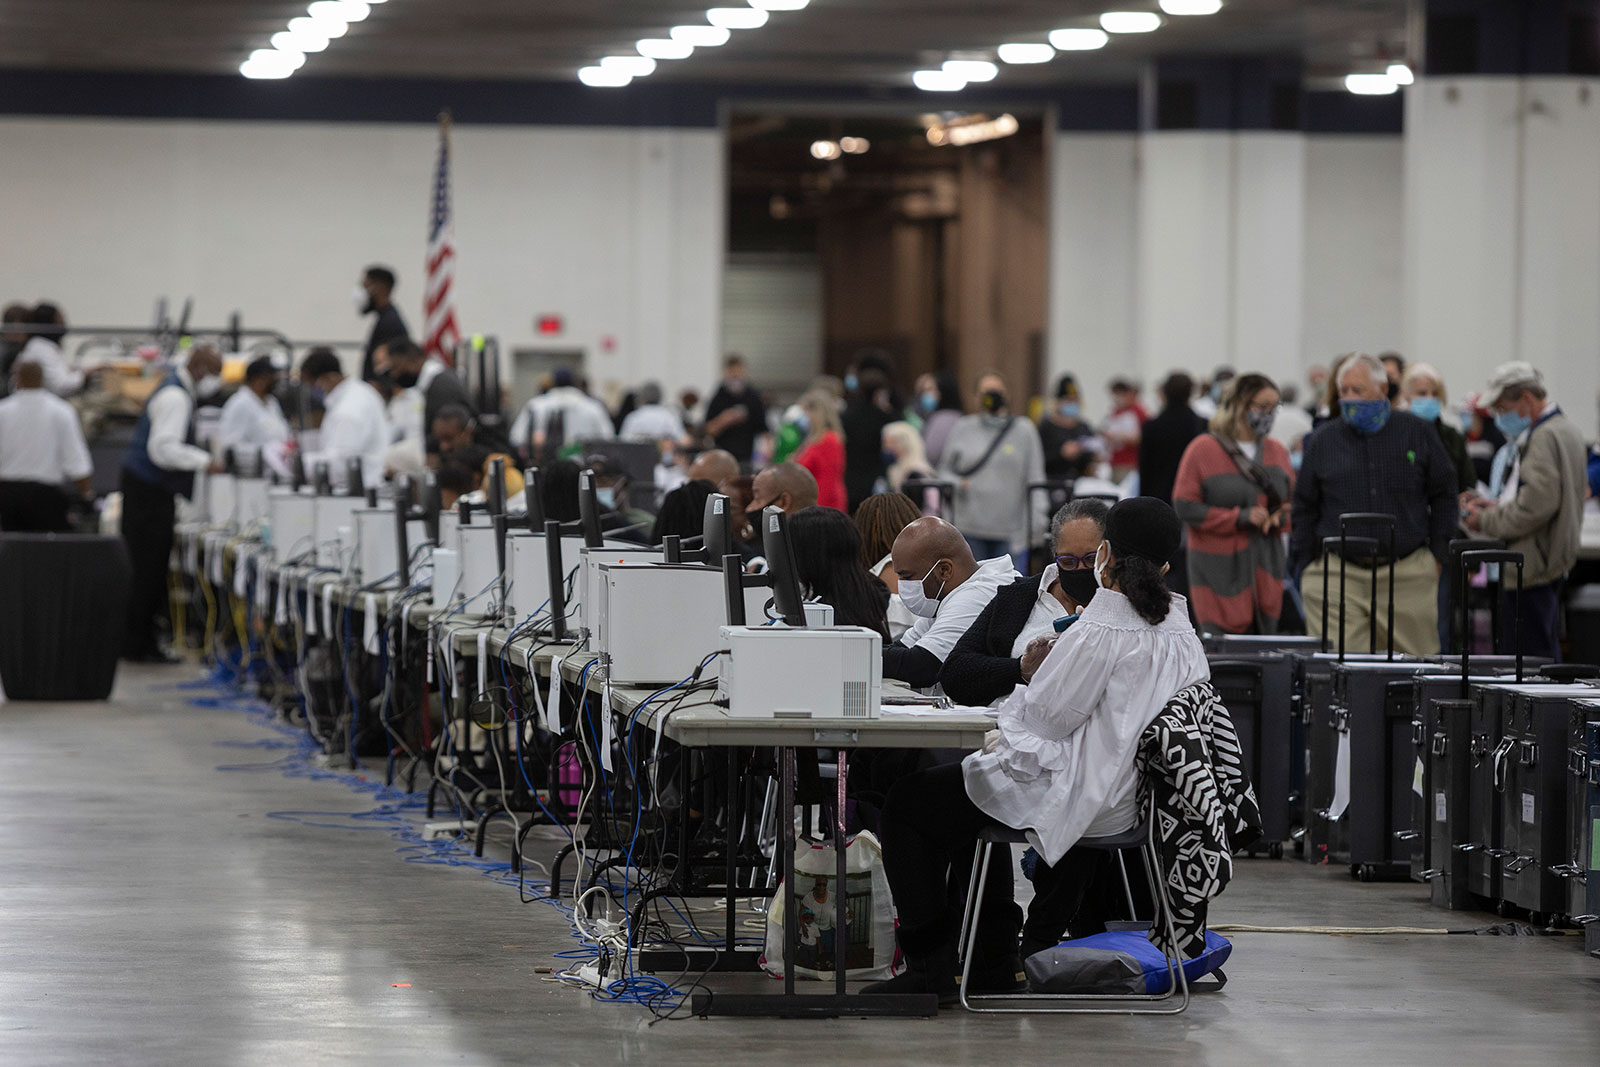 Workers with the Detroit Department of Elections help process absentee ballots at the Central Counting Board in the TCF Center in Detroit on November 4.